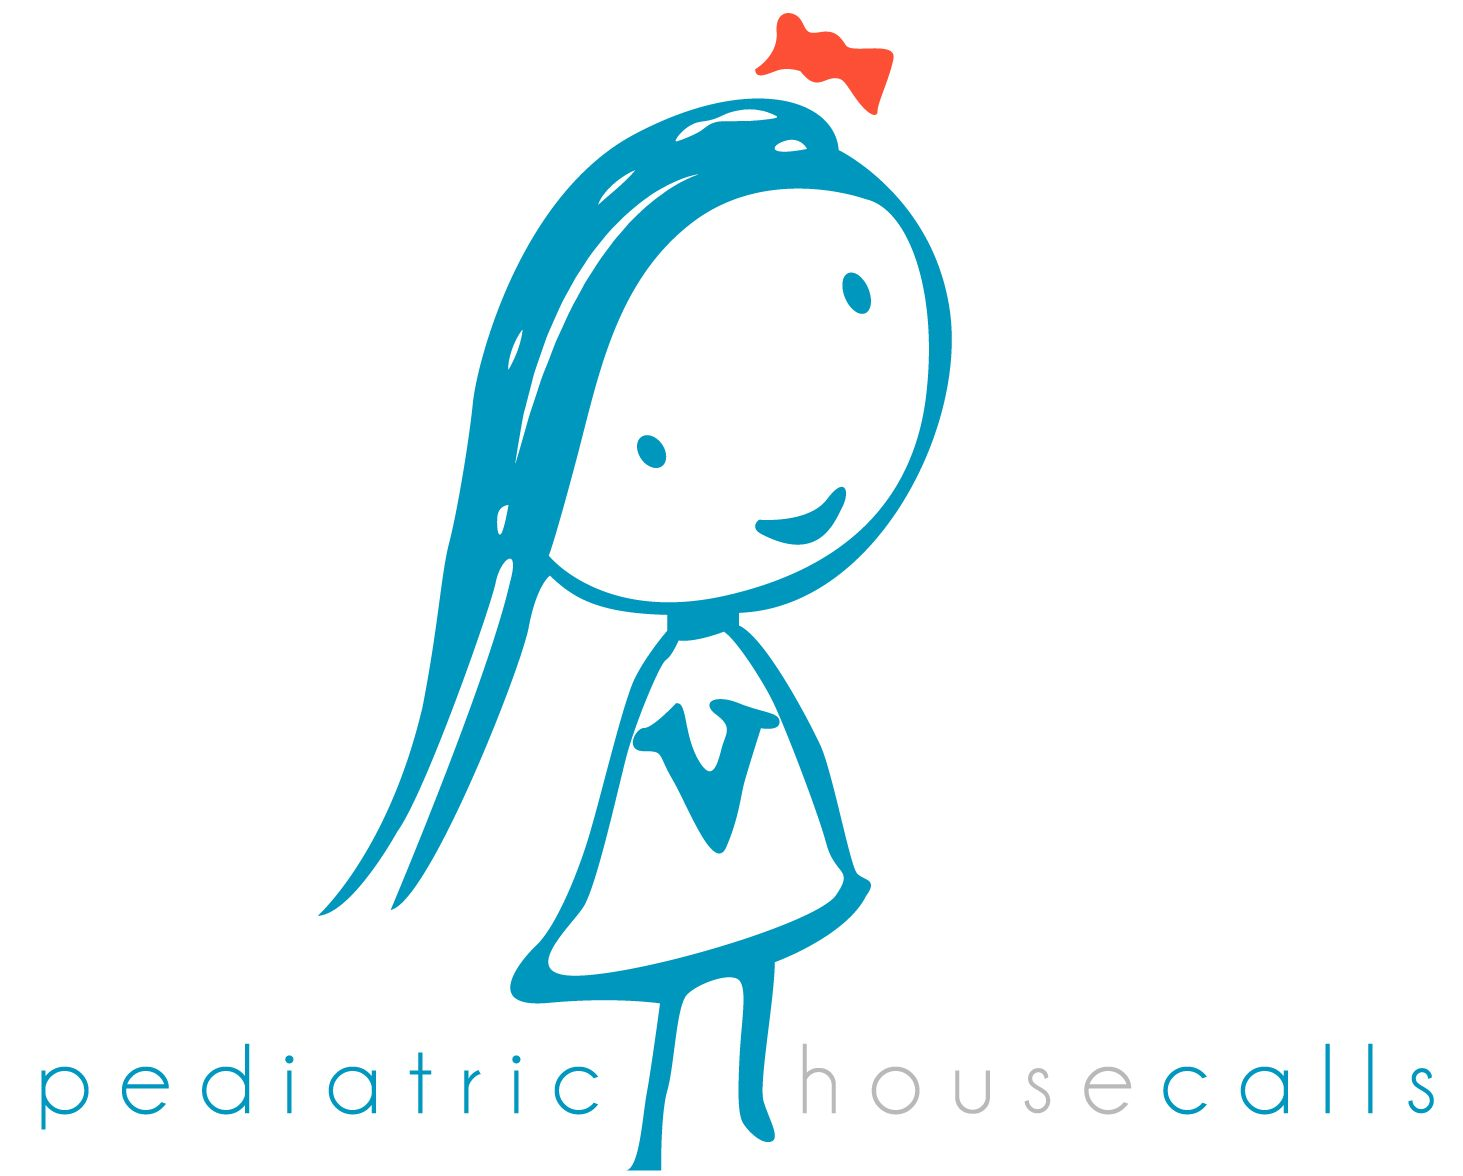 Pediatric Housecalls